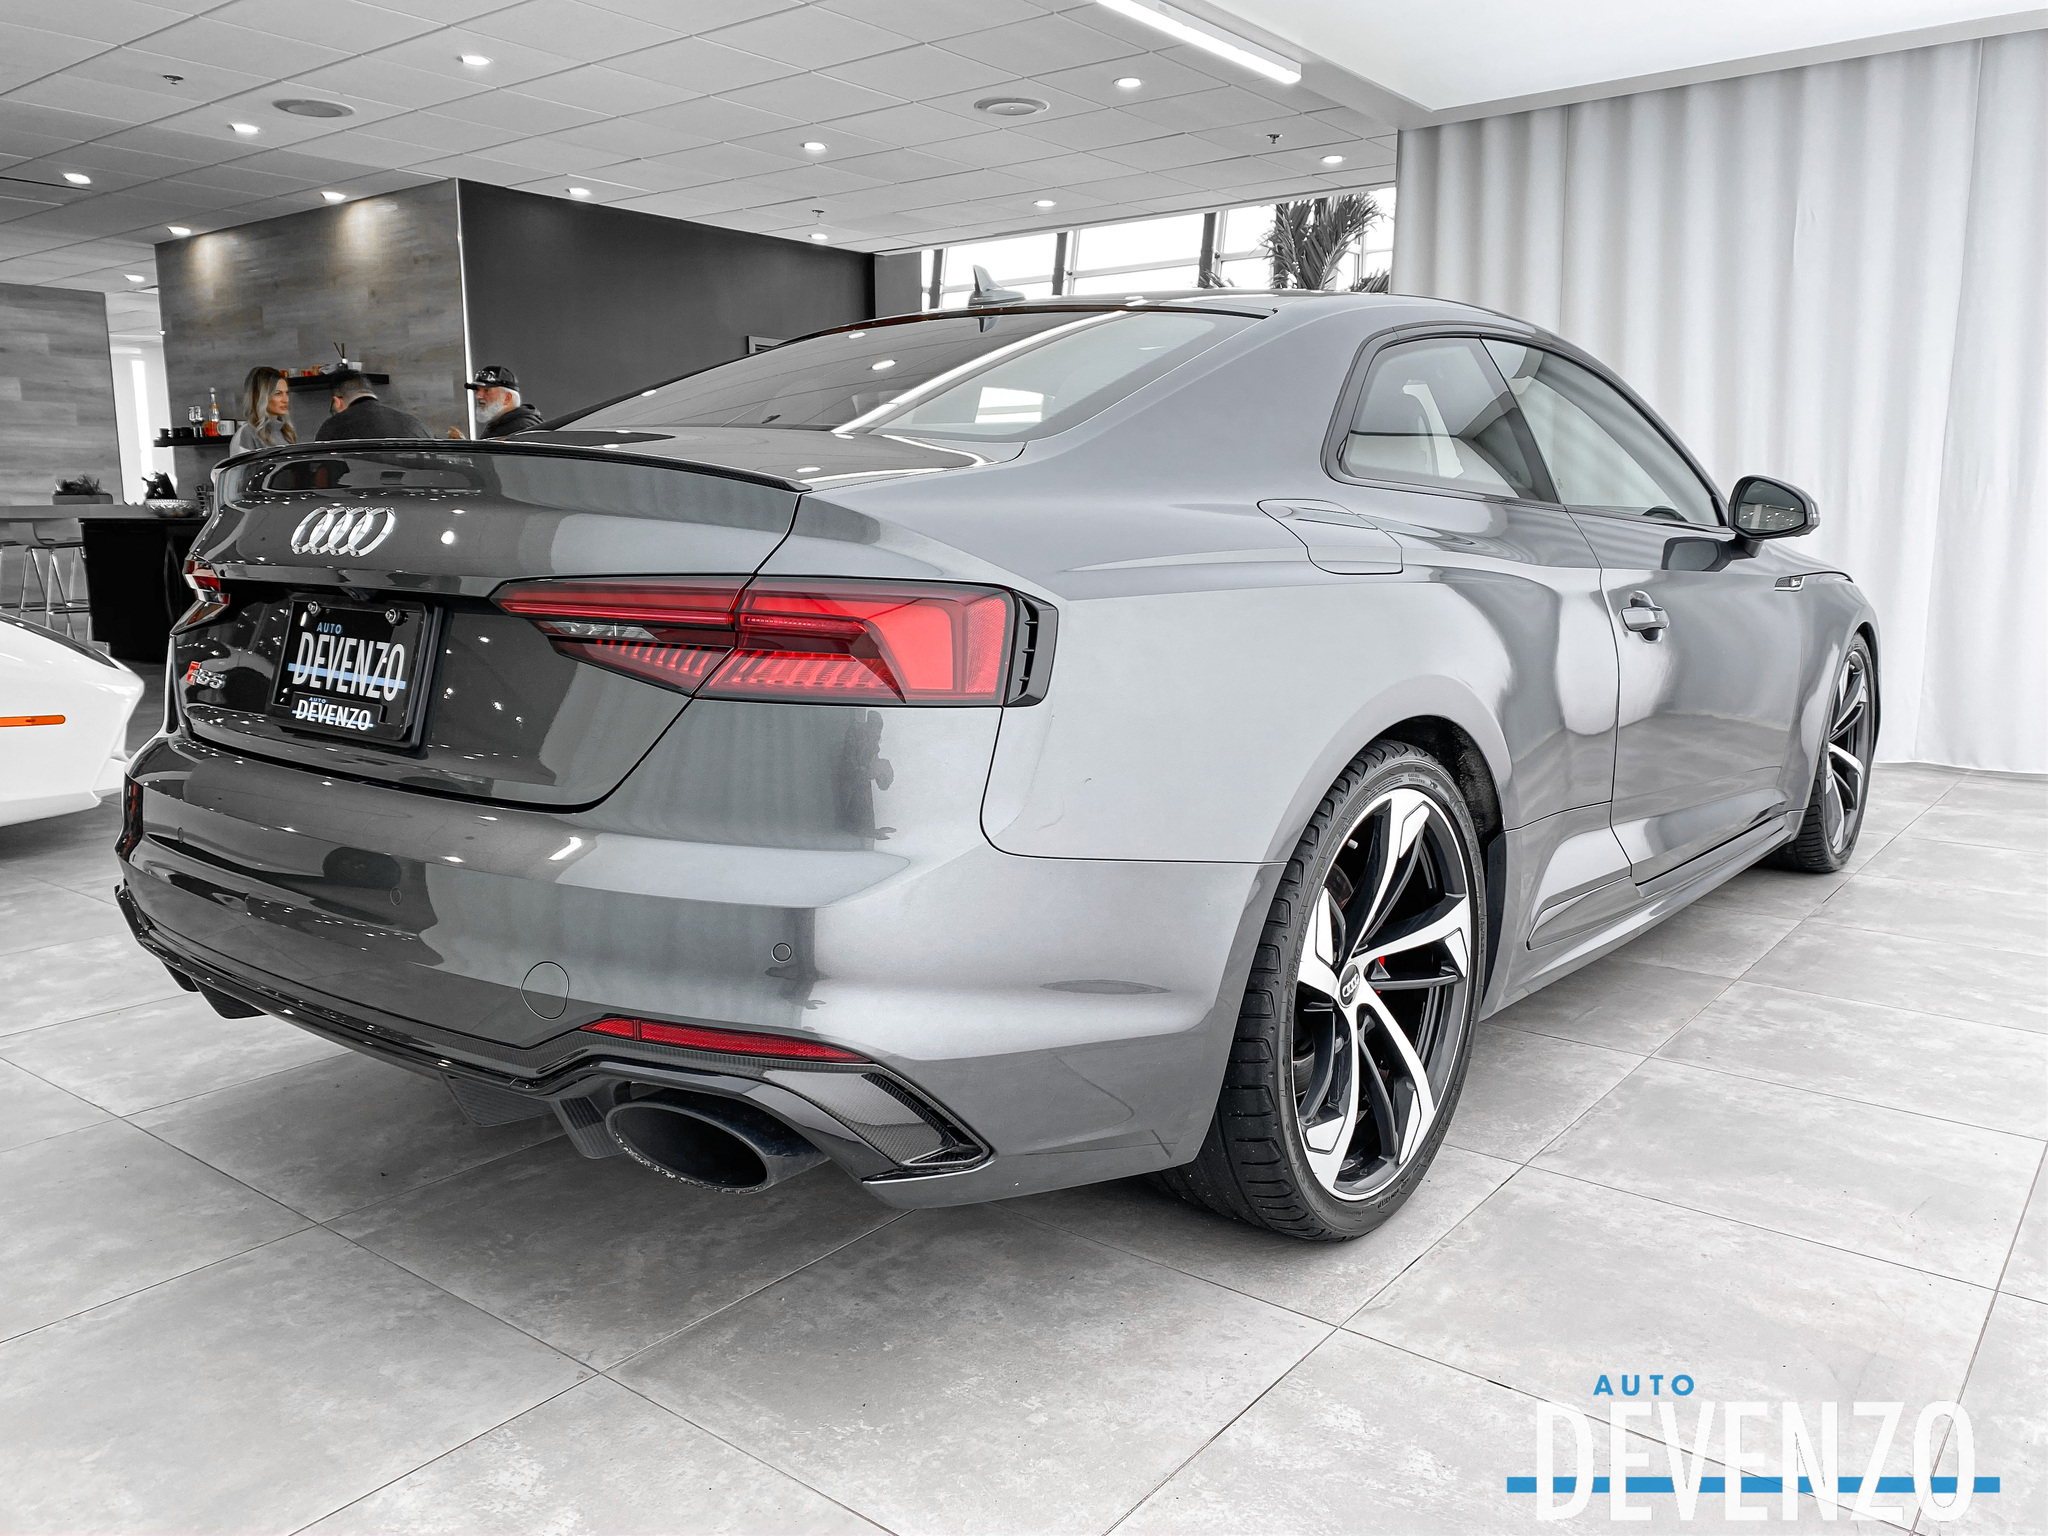 2018 Audi RS 5 Coupe QUATTRO 2.9 BITURBO 450HP WTY 20/11/2022 complet